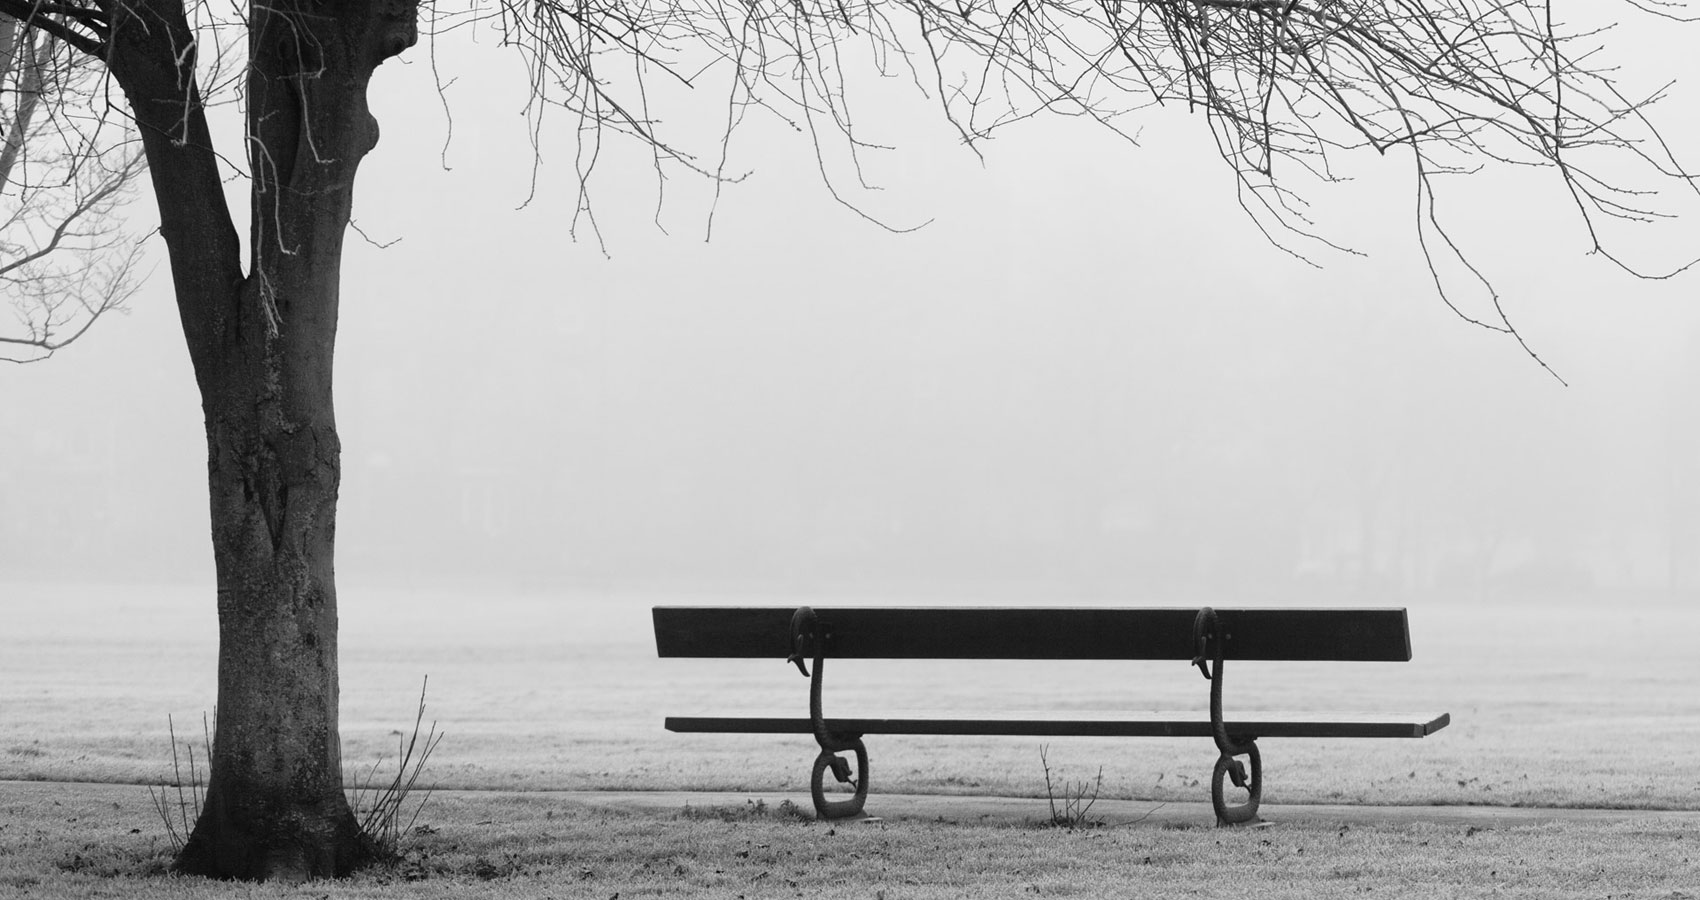 Park Bench, written by Eoghan Lyng at Spillwords.com